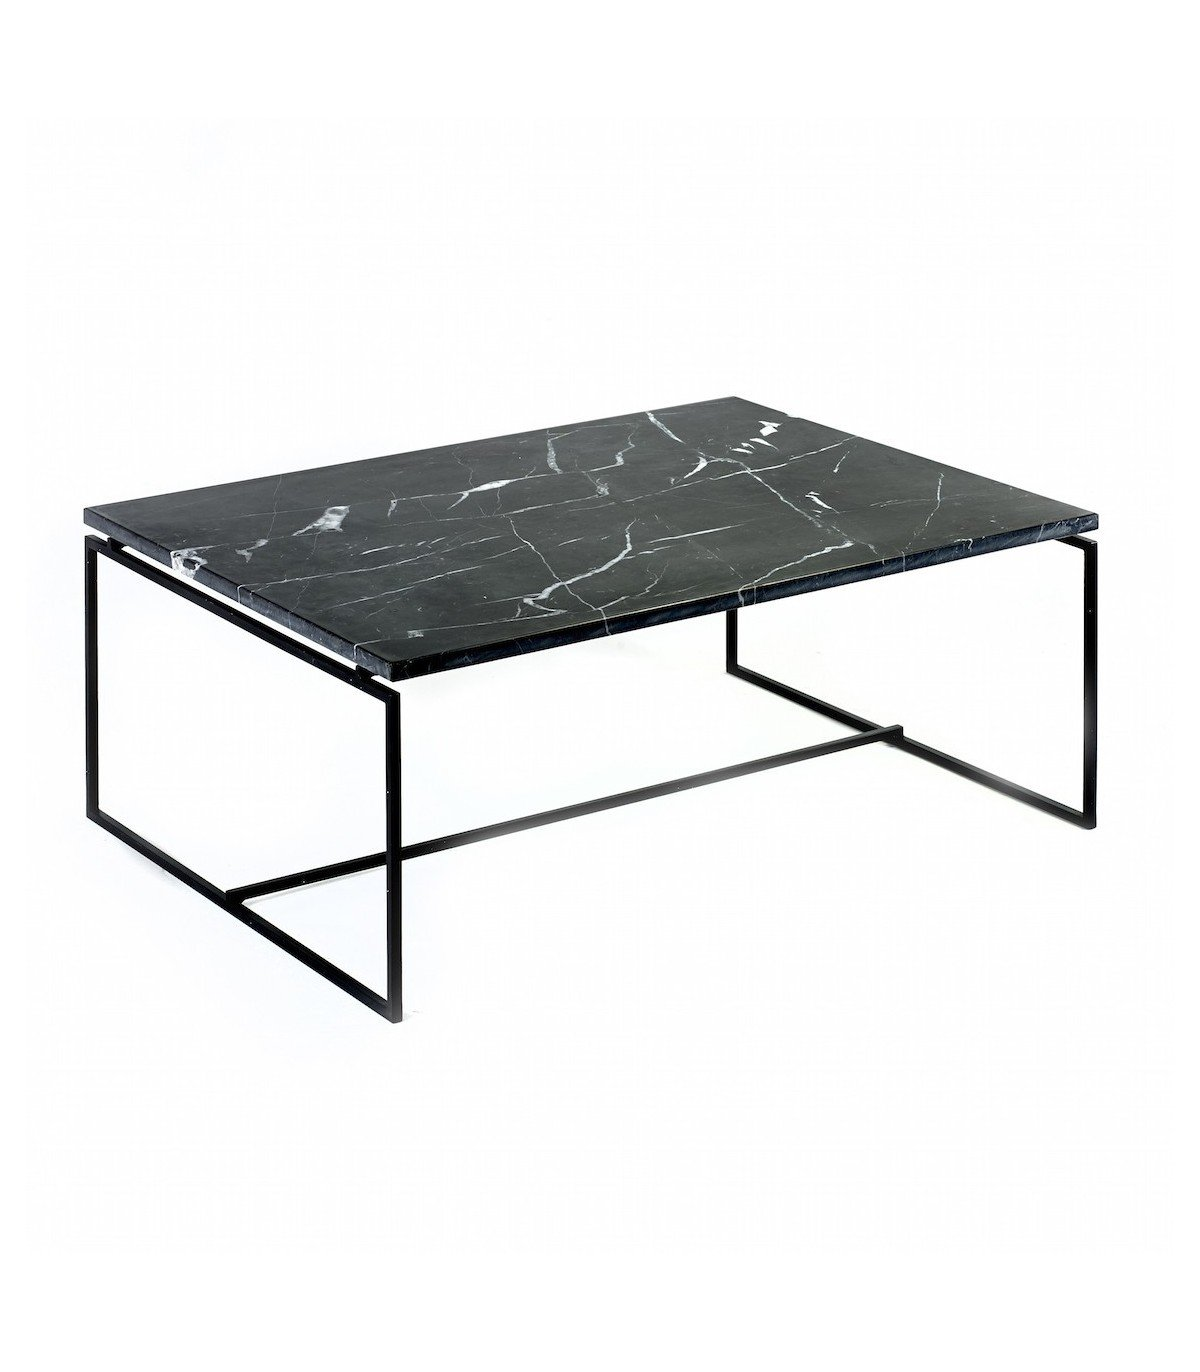 nero black marble table serax